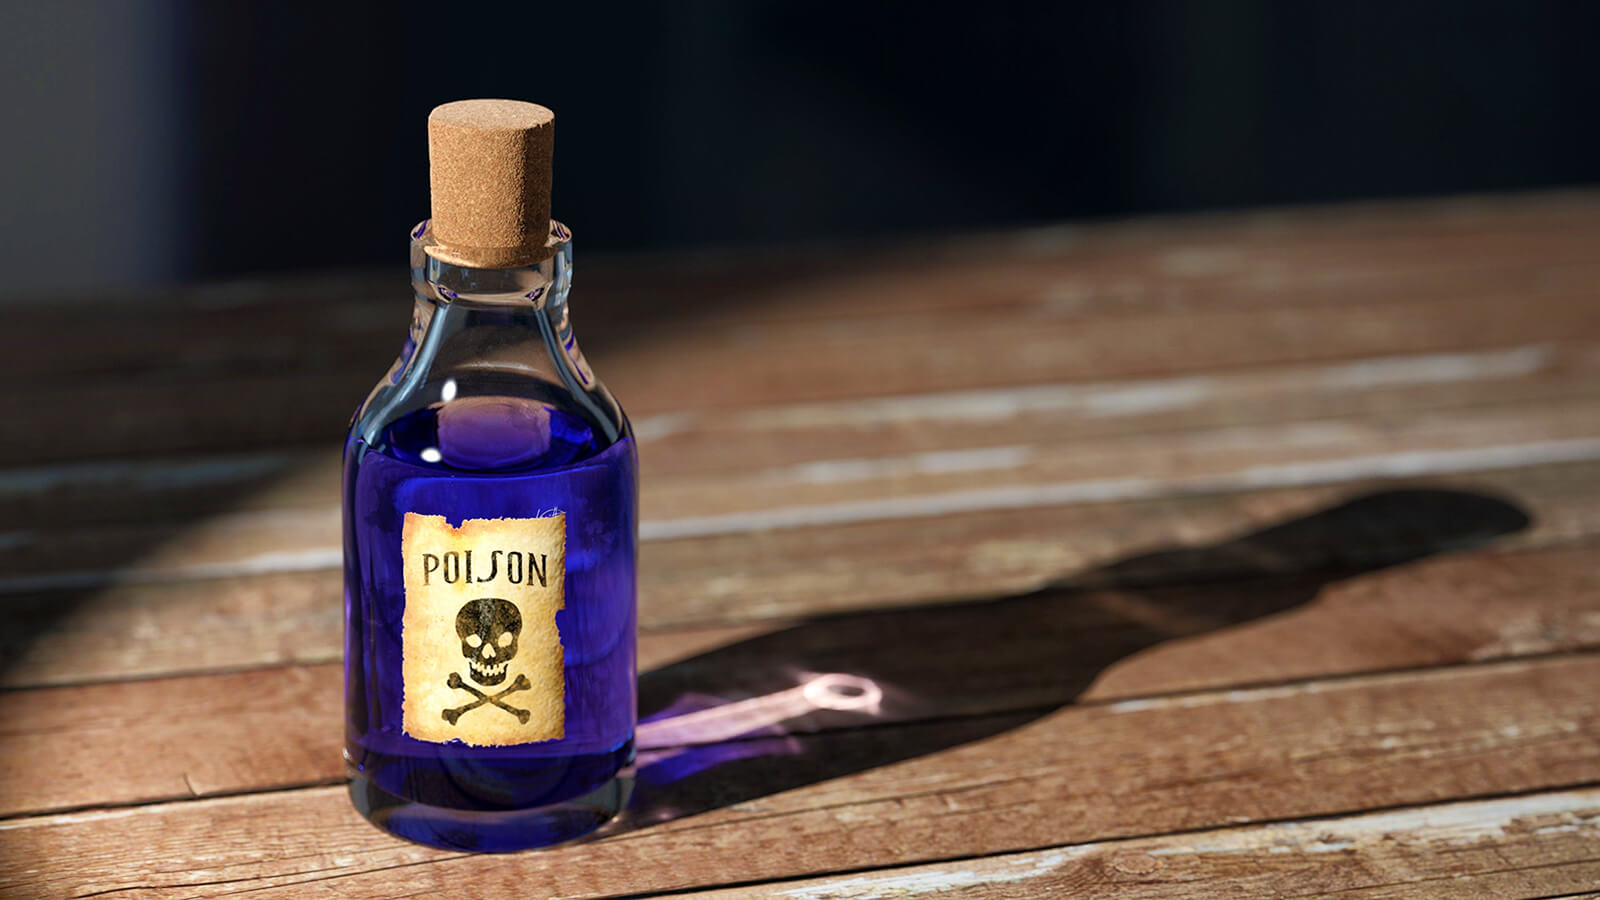 The Top 5 Toxins Lurking In Our Homes